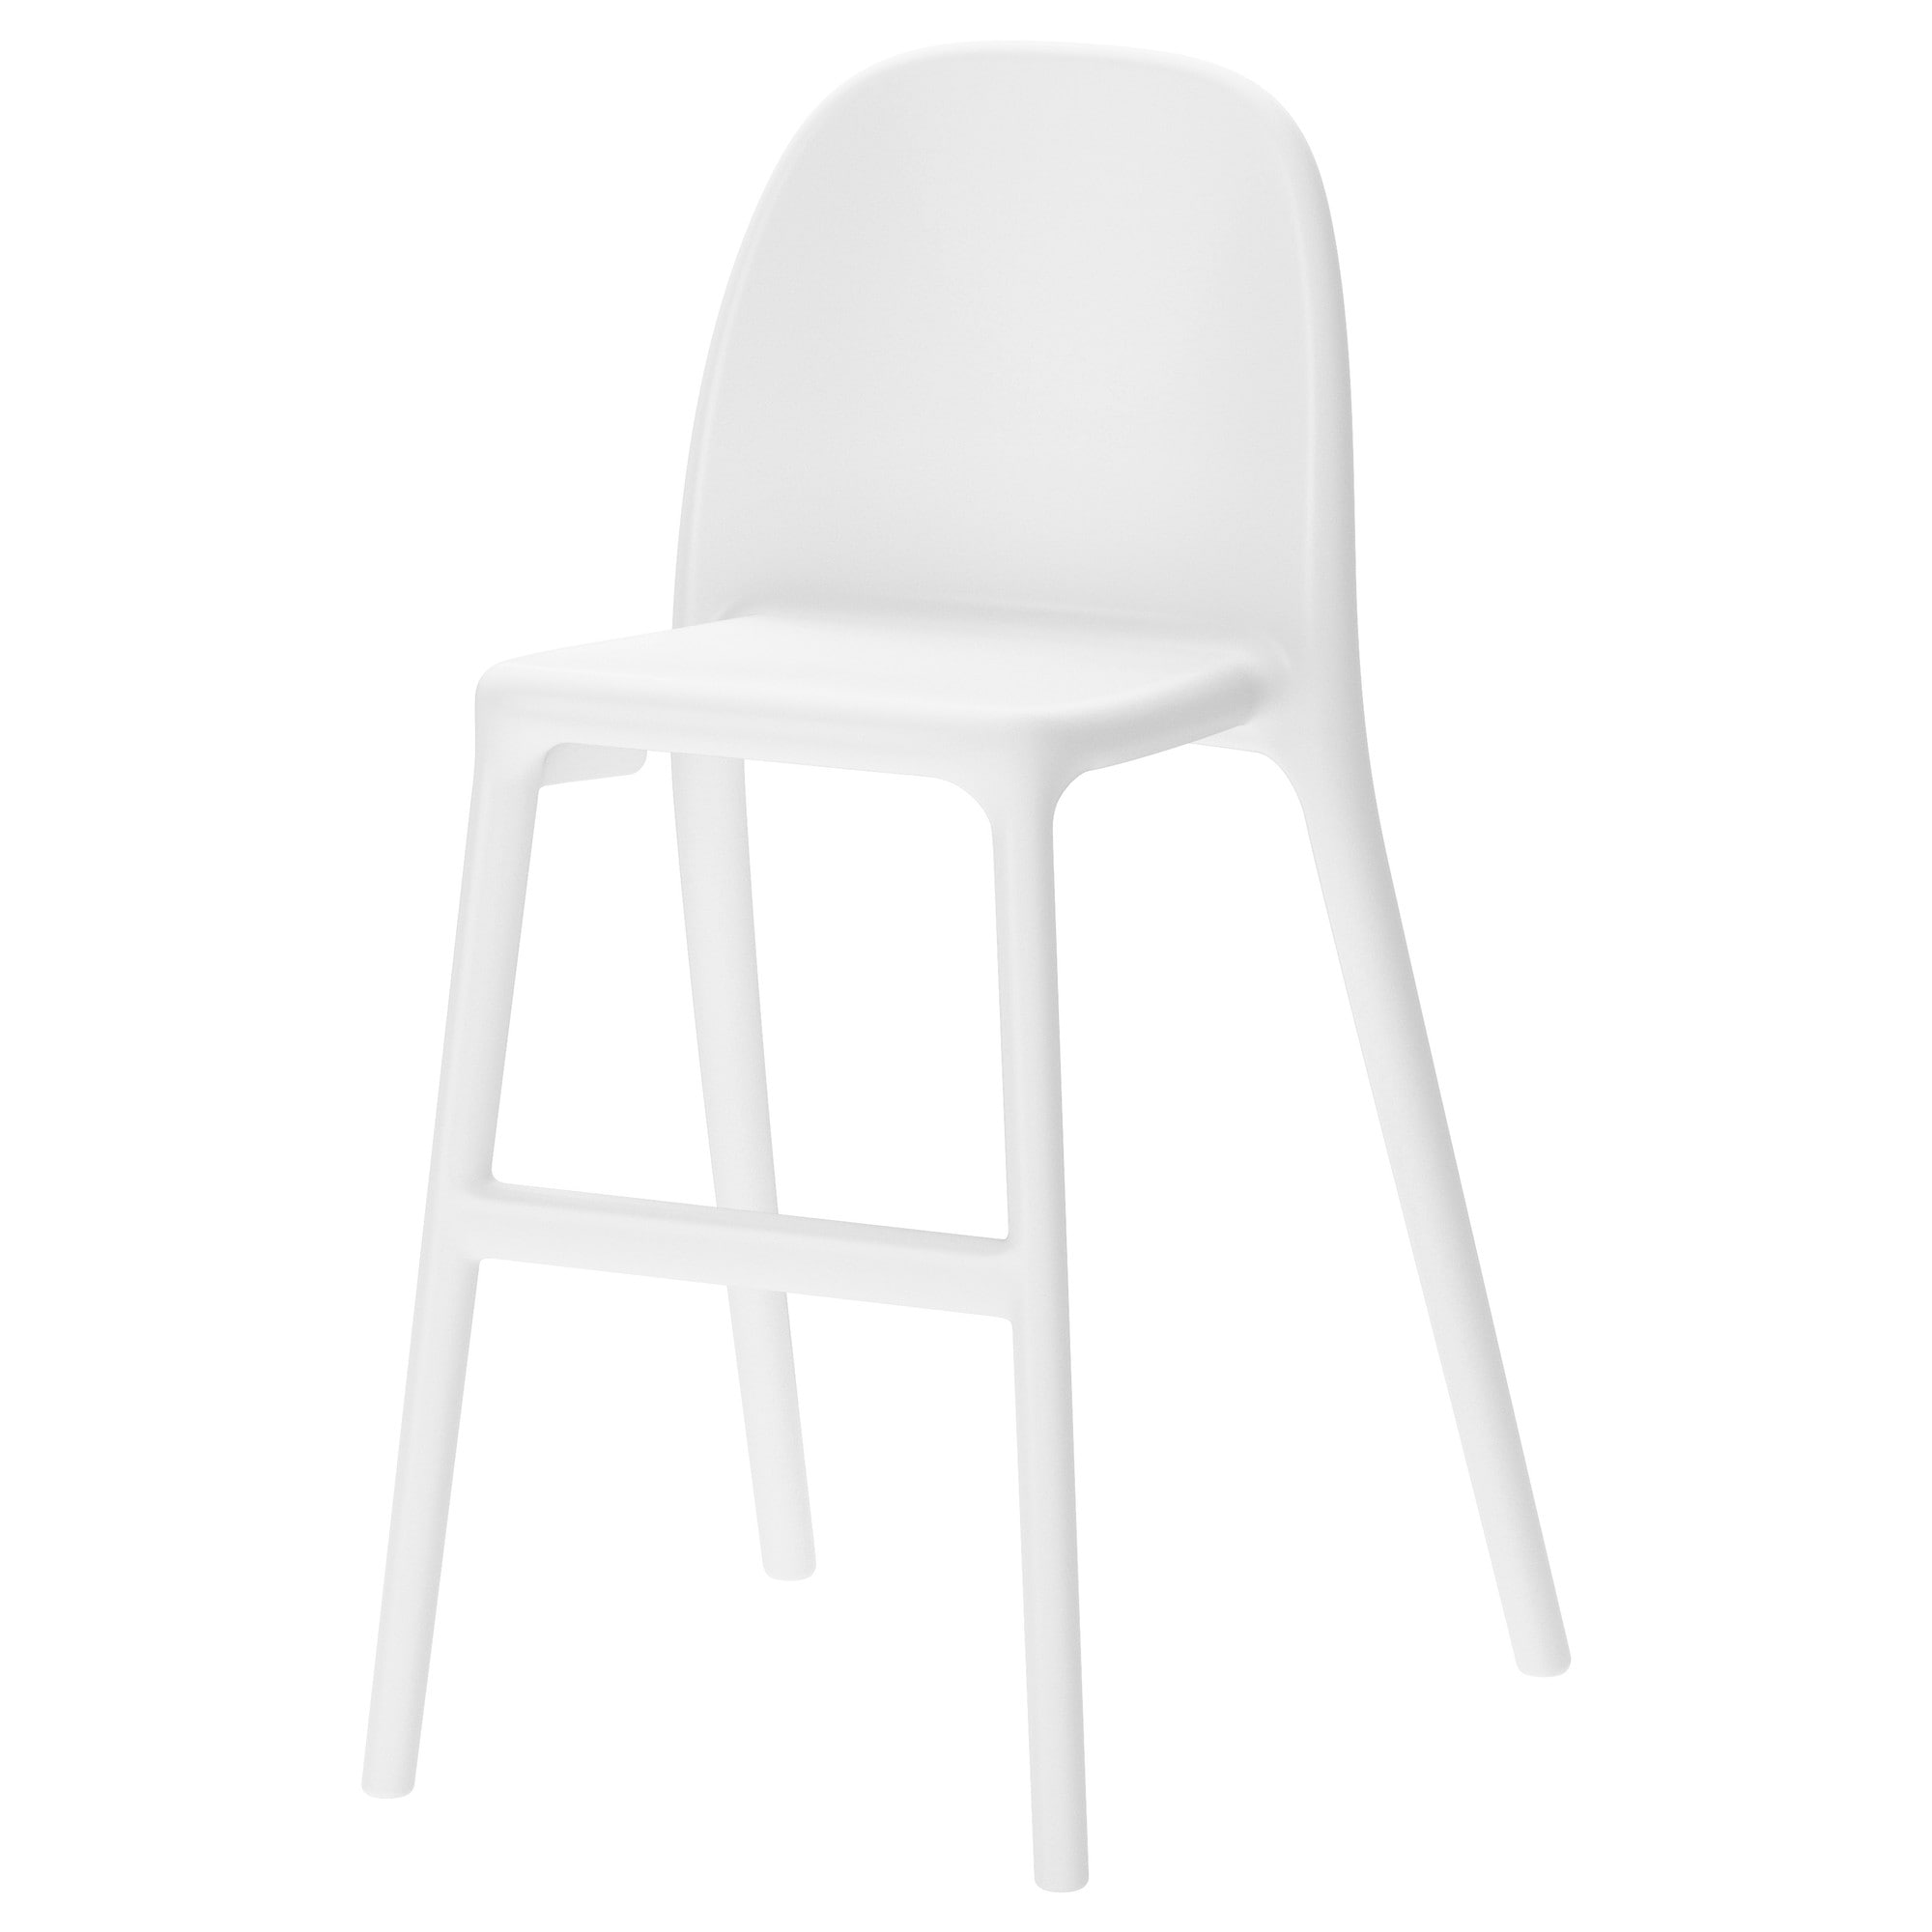 Kids Chairs IKEA